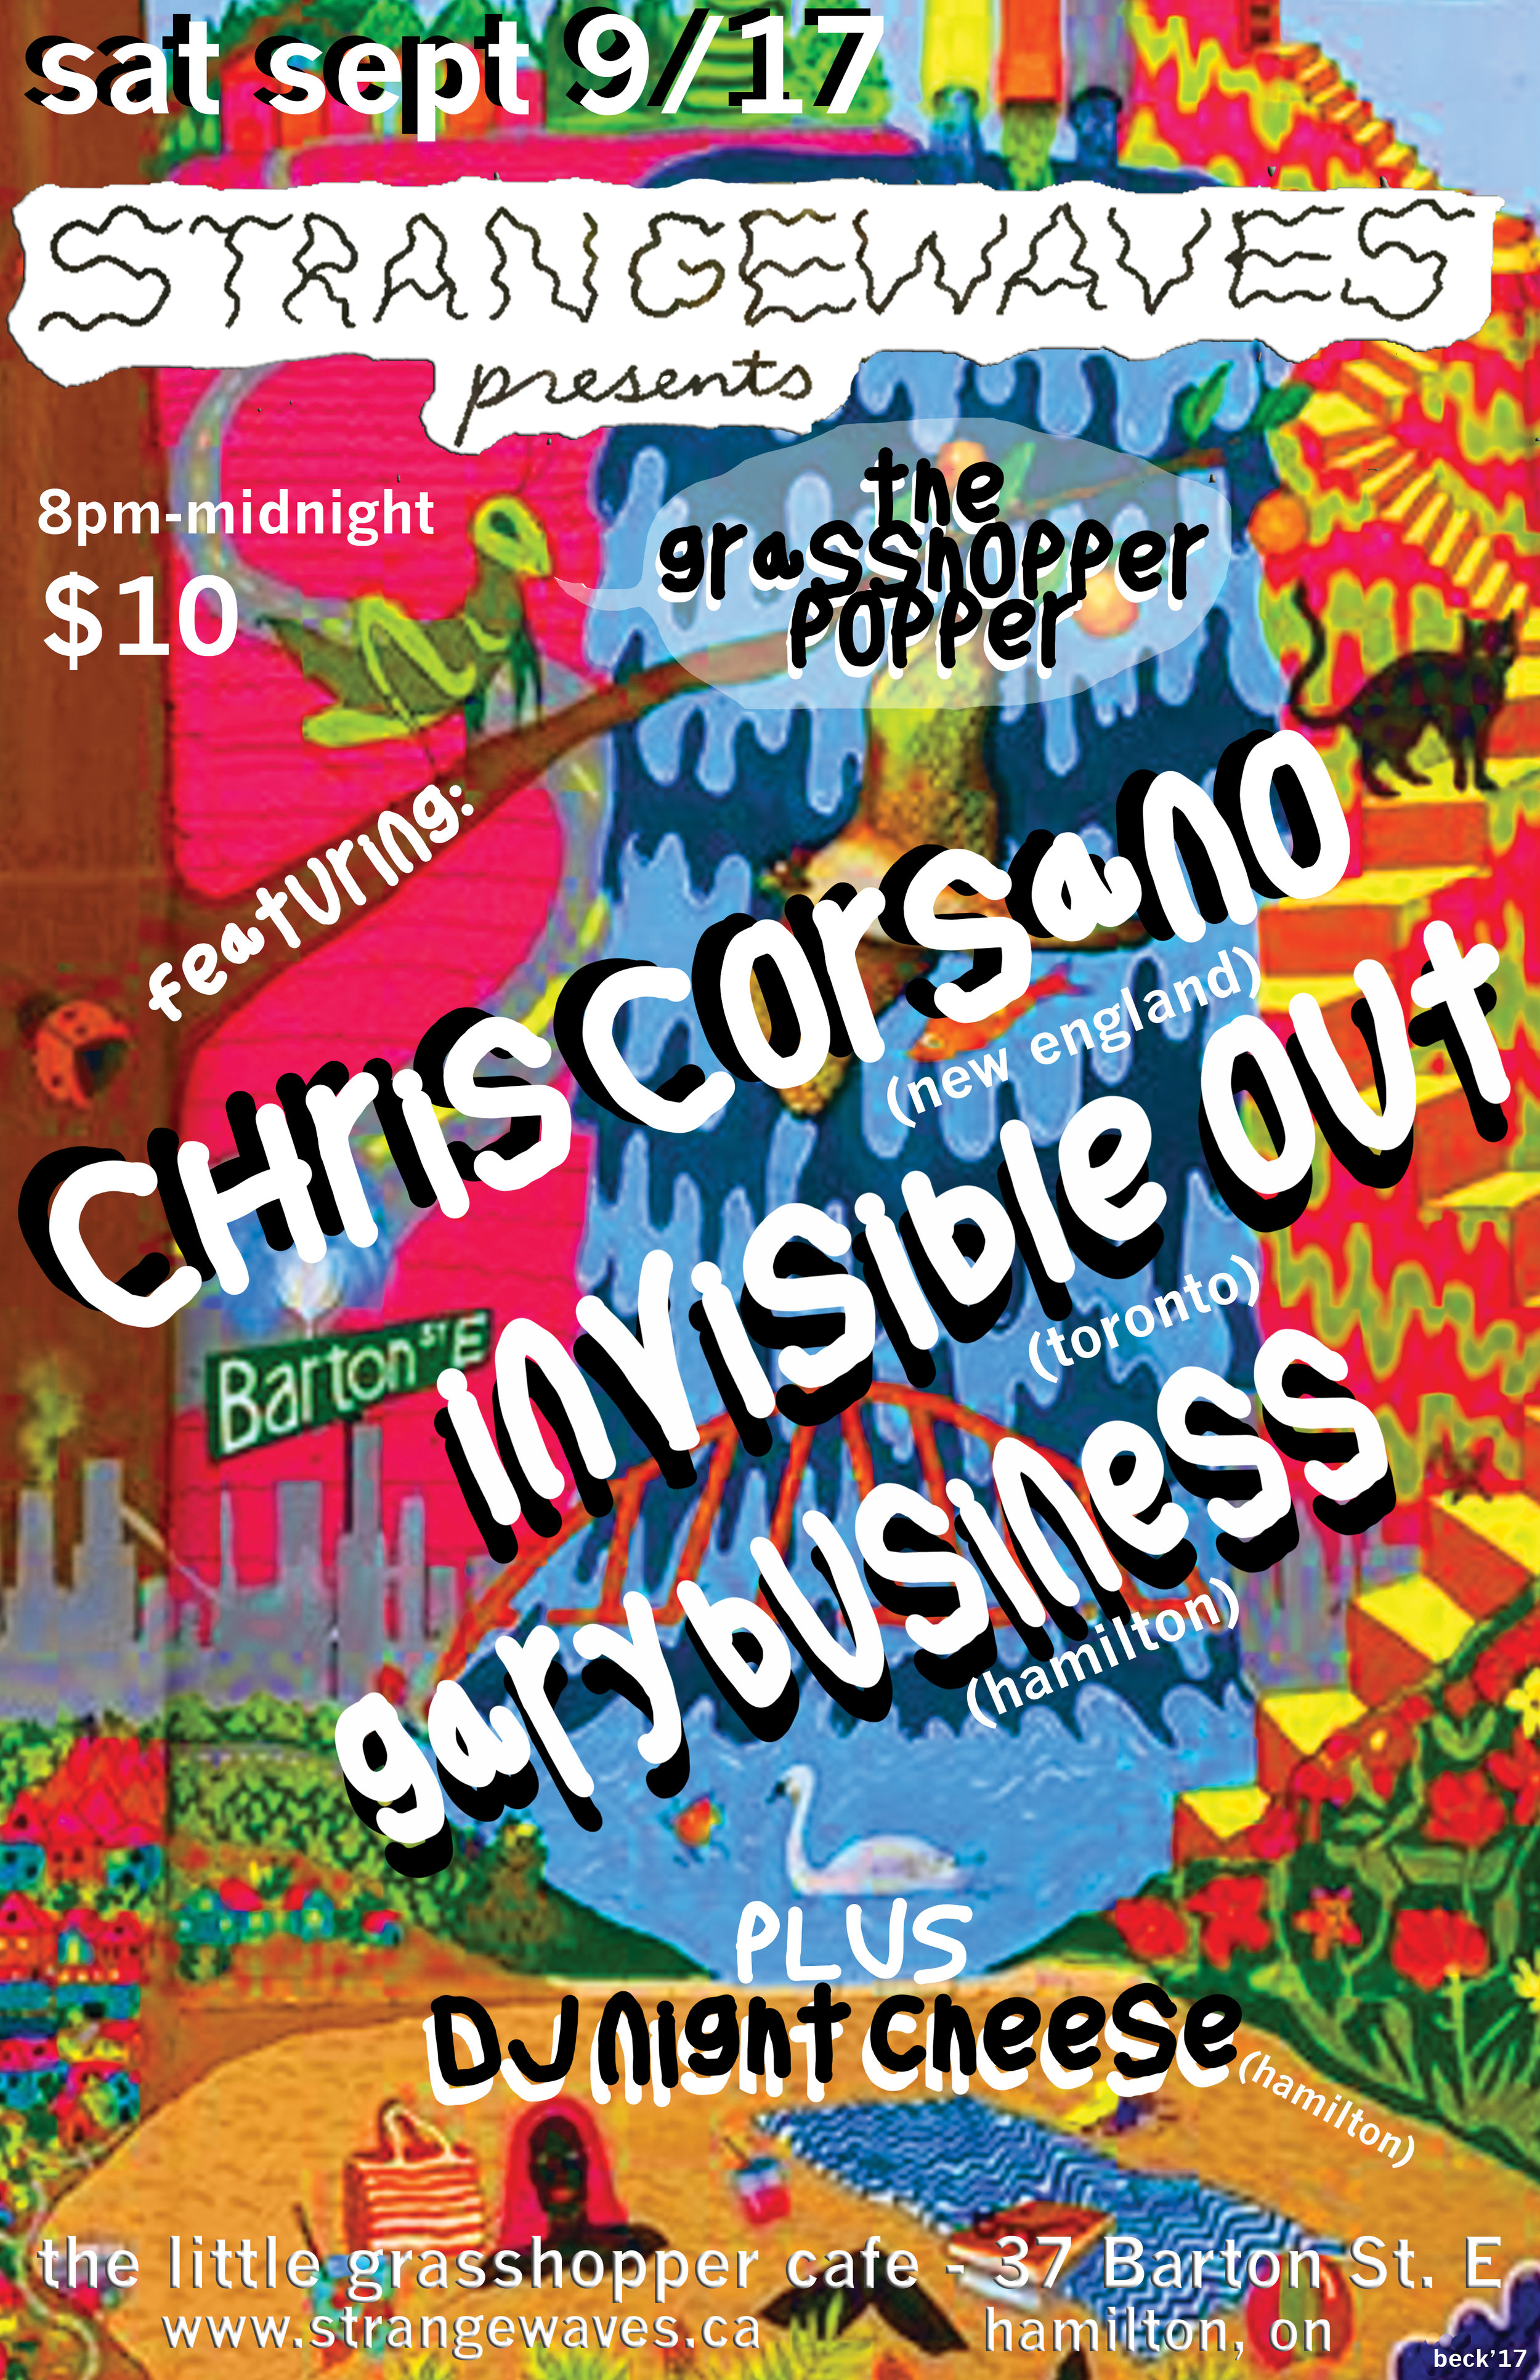 Chris Corsano, Invisible Out, Gary Business  @The Little Grasshopper Cafe